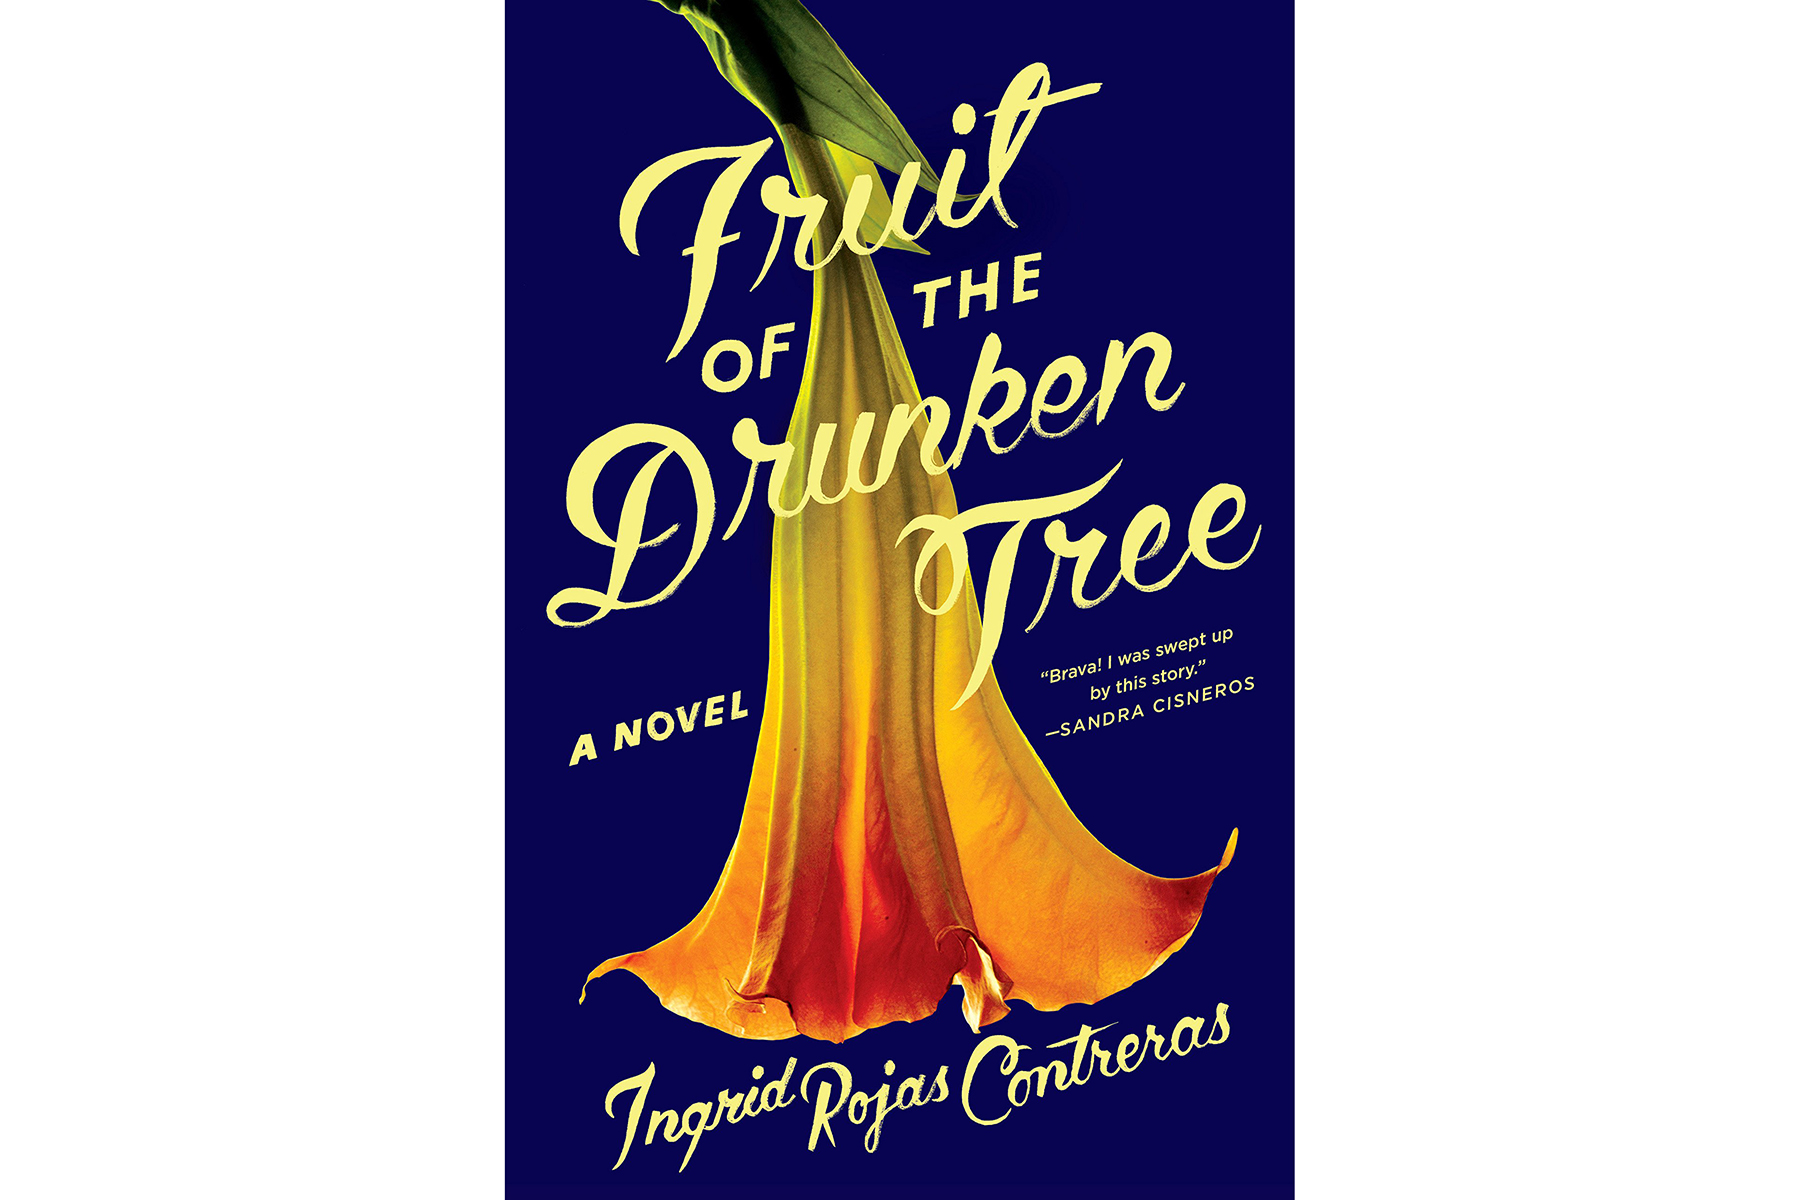 Fruit of the Drunken Tree, by Ingrid Rojas Contreras